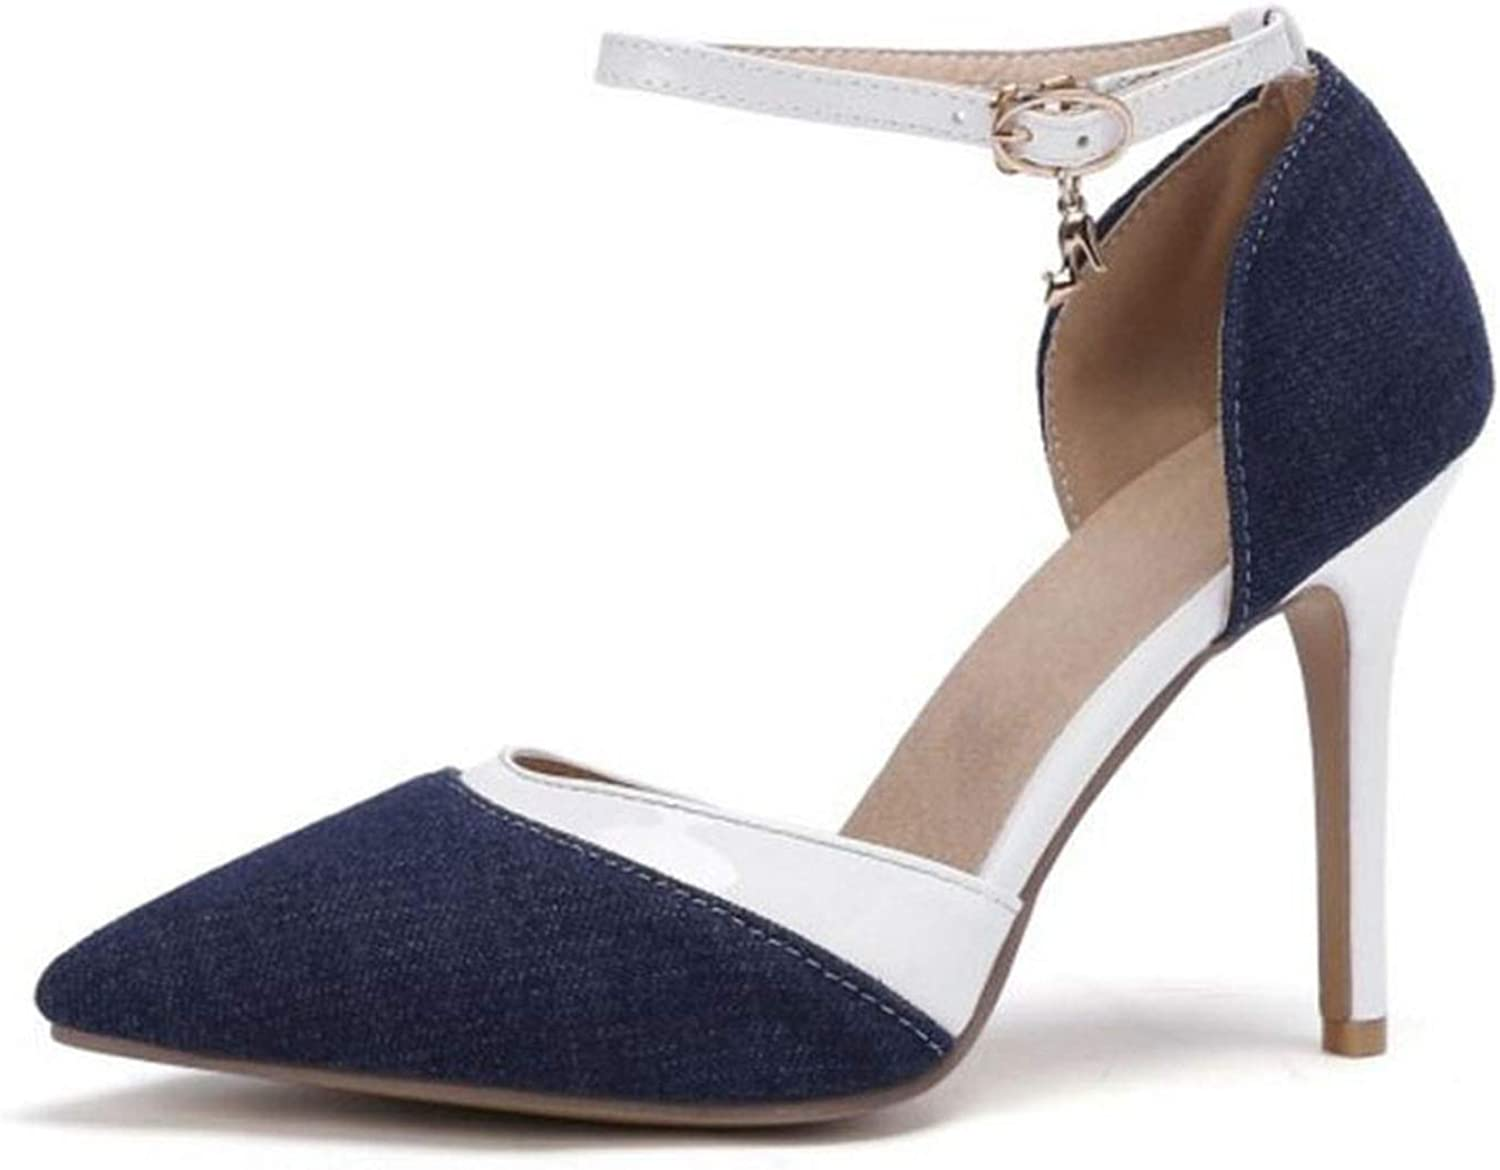 Fairly Party High Heel Pointed Toe Ladies Summer shoes Wedding Dating Spring,Dark bluee,6